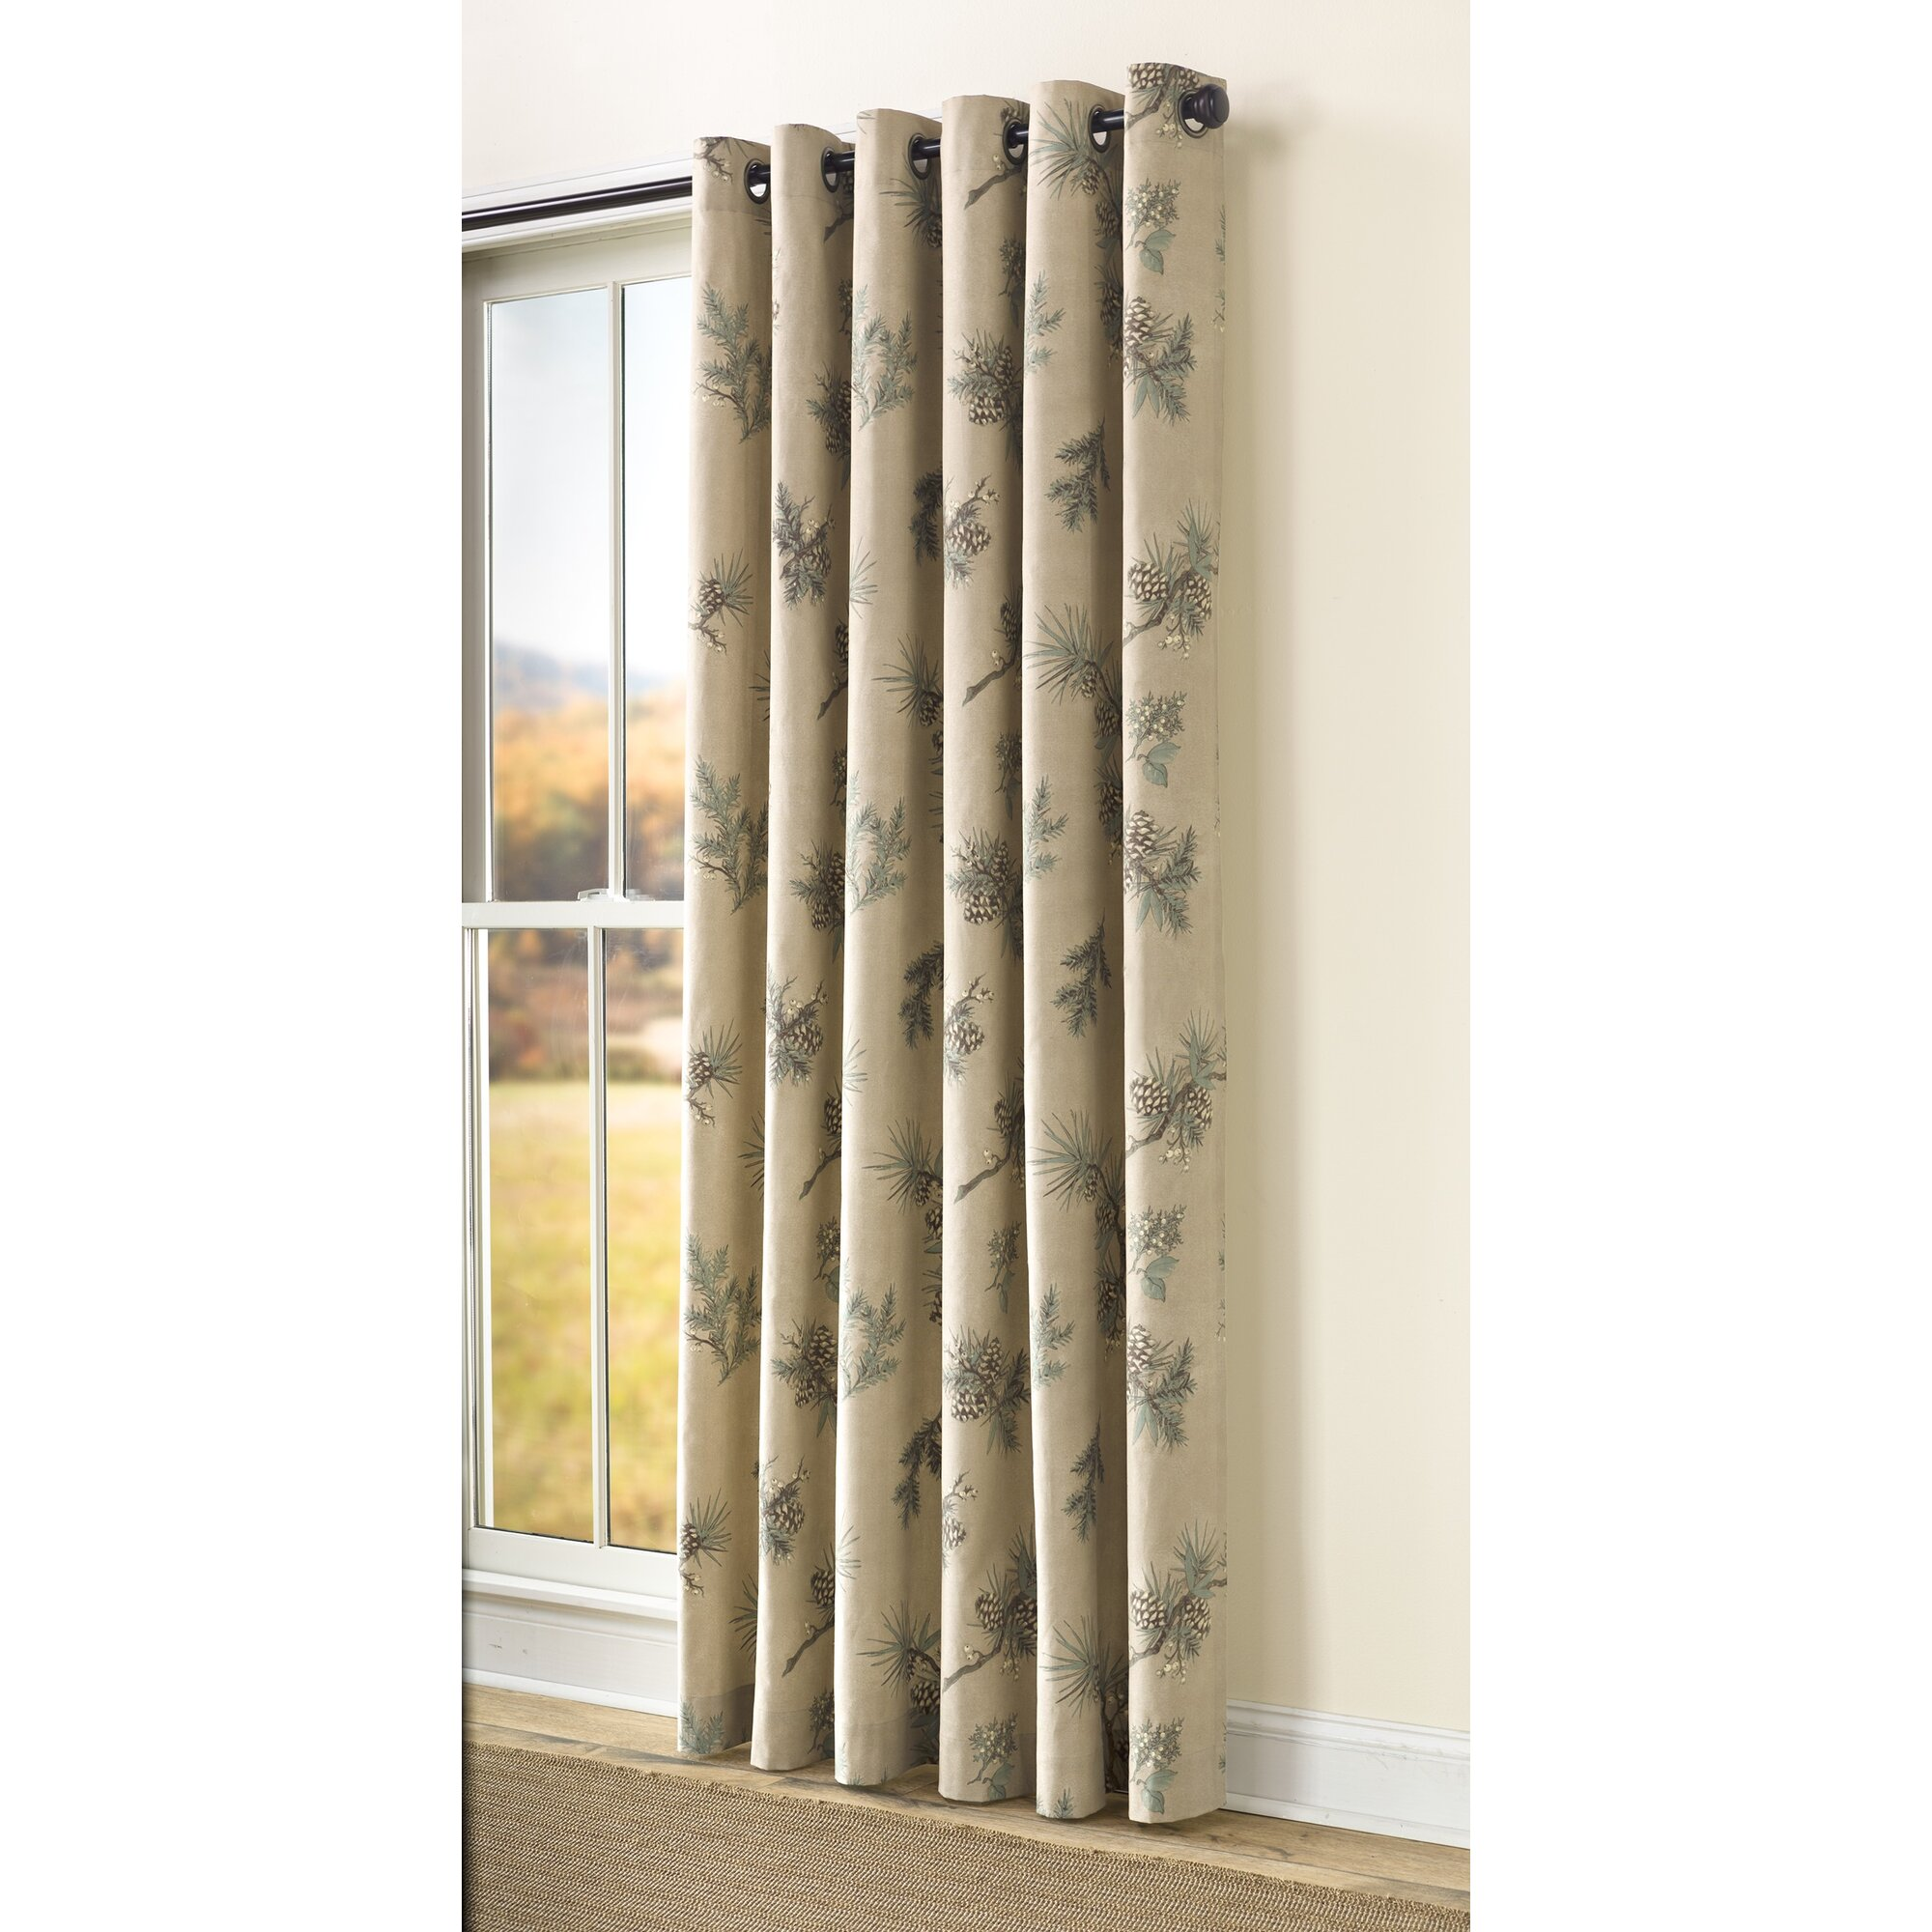 Grommet Top Curtains Definition Thermalogic Window Liner Botpack Top Green Grommet Curtains